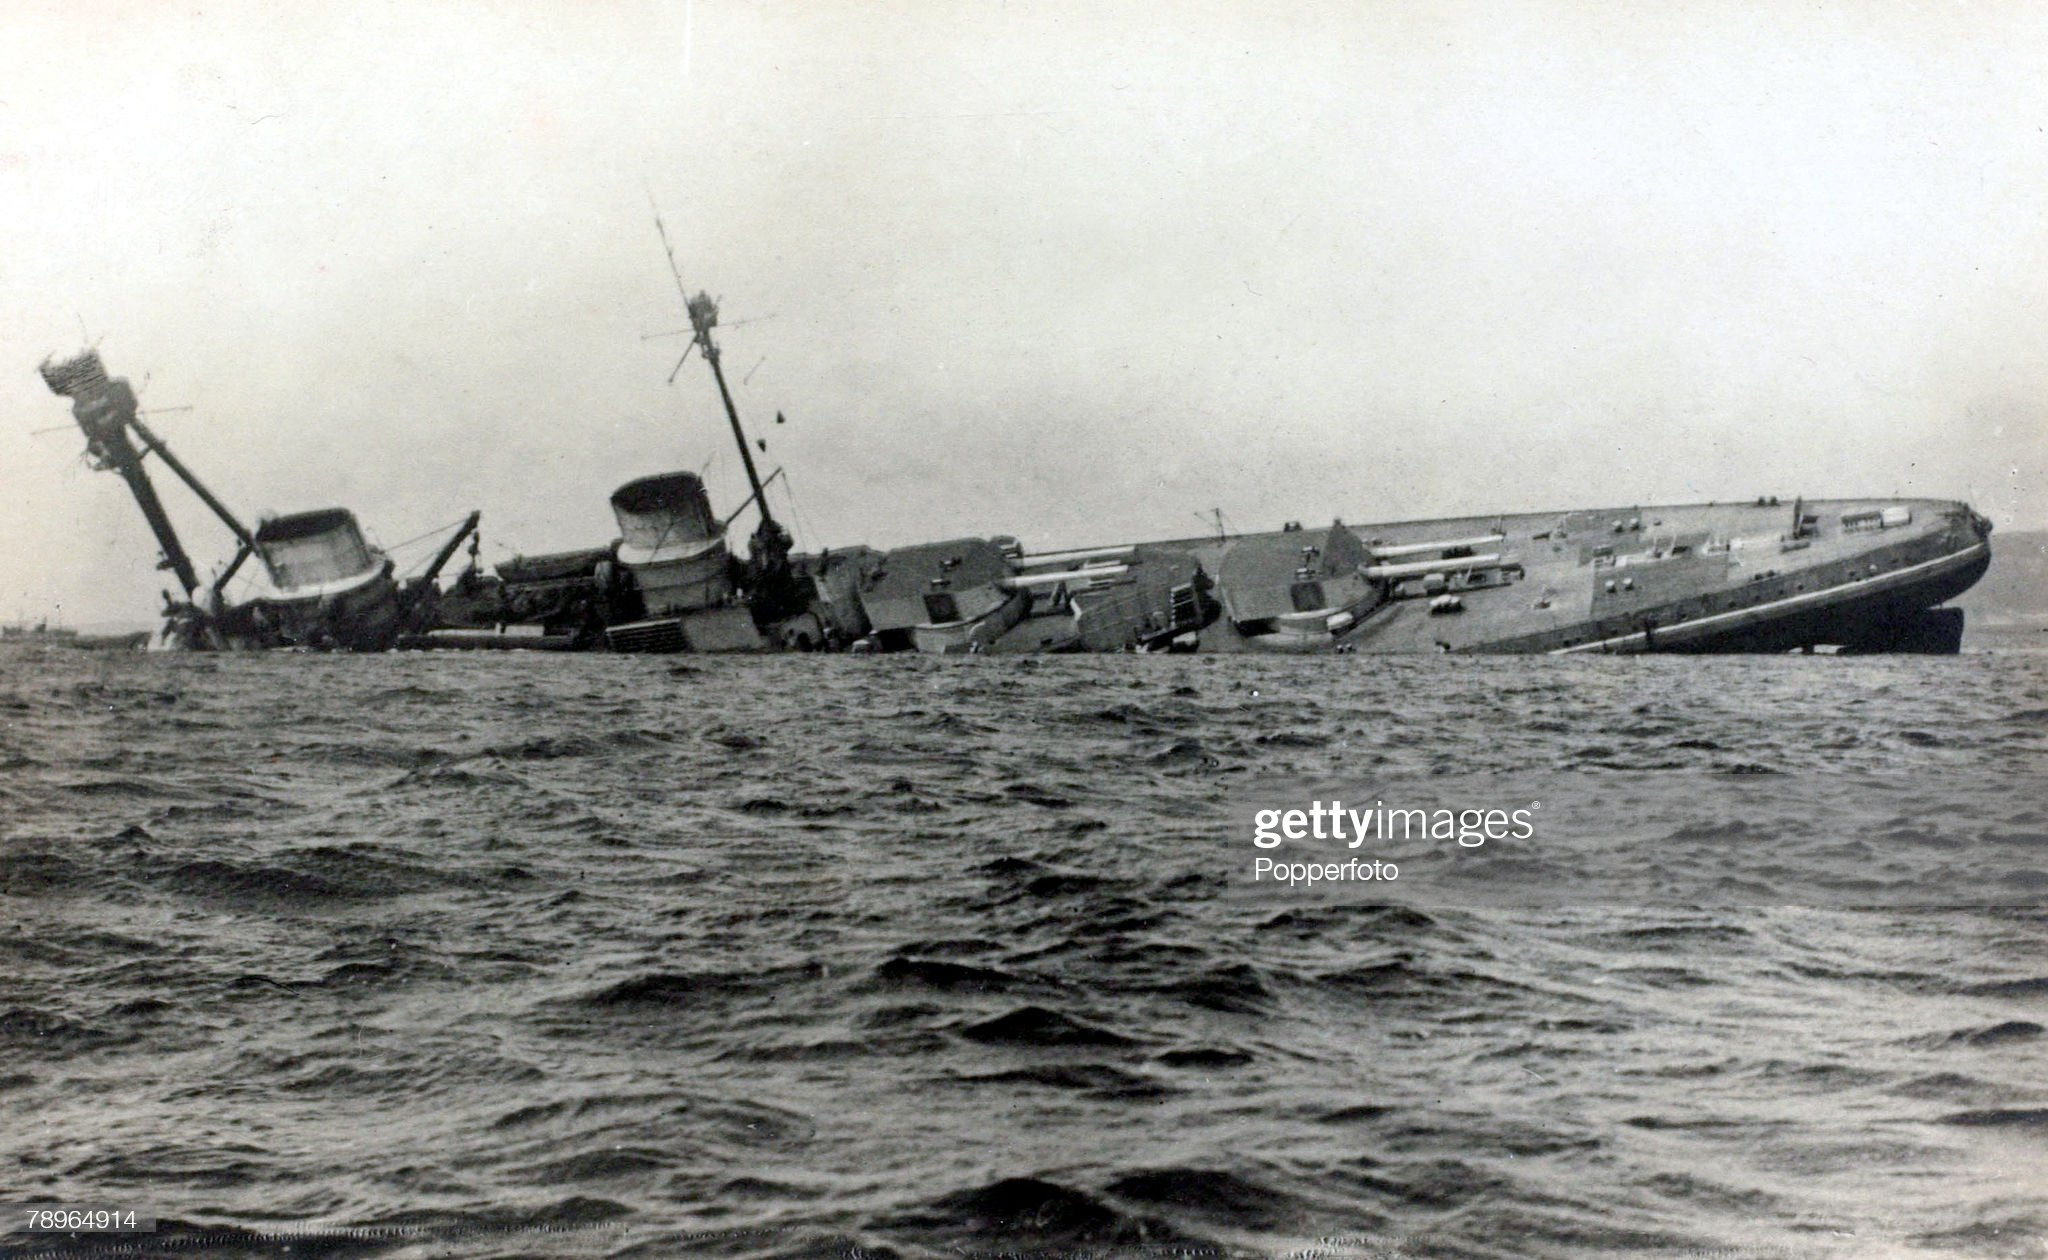 https://media.gettyimages.com/photos/war-and-conflict-world-war-i-pic-21st-june-1919-the-german-fleet-at-picture-id78964914?s=2048x2048